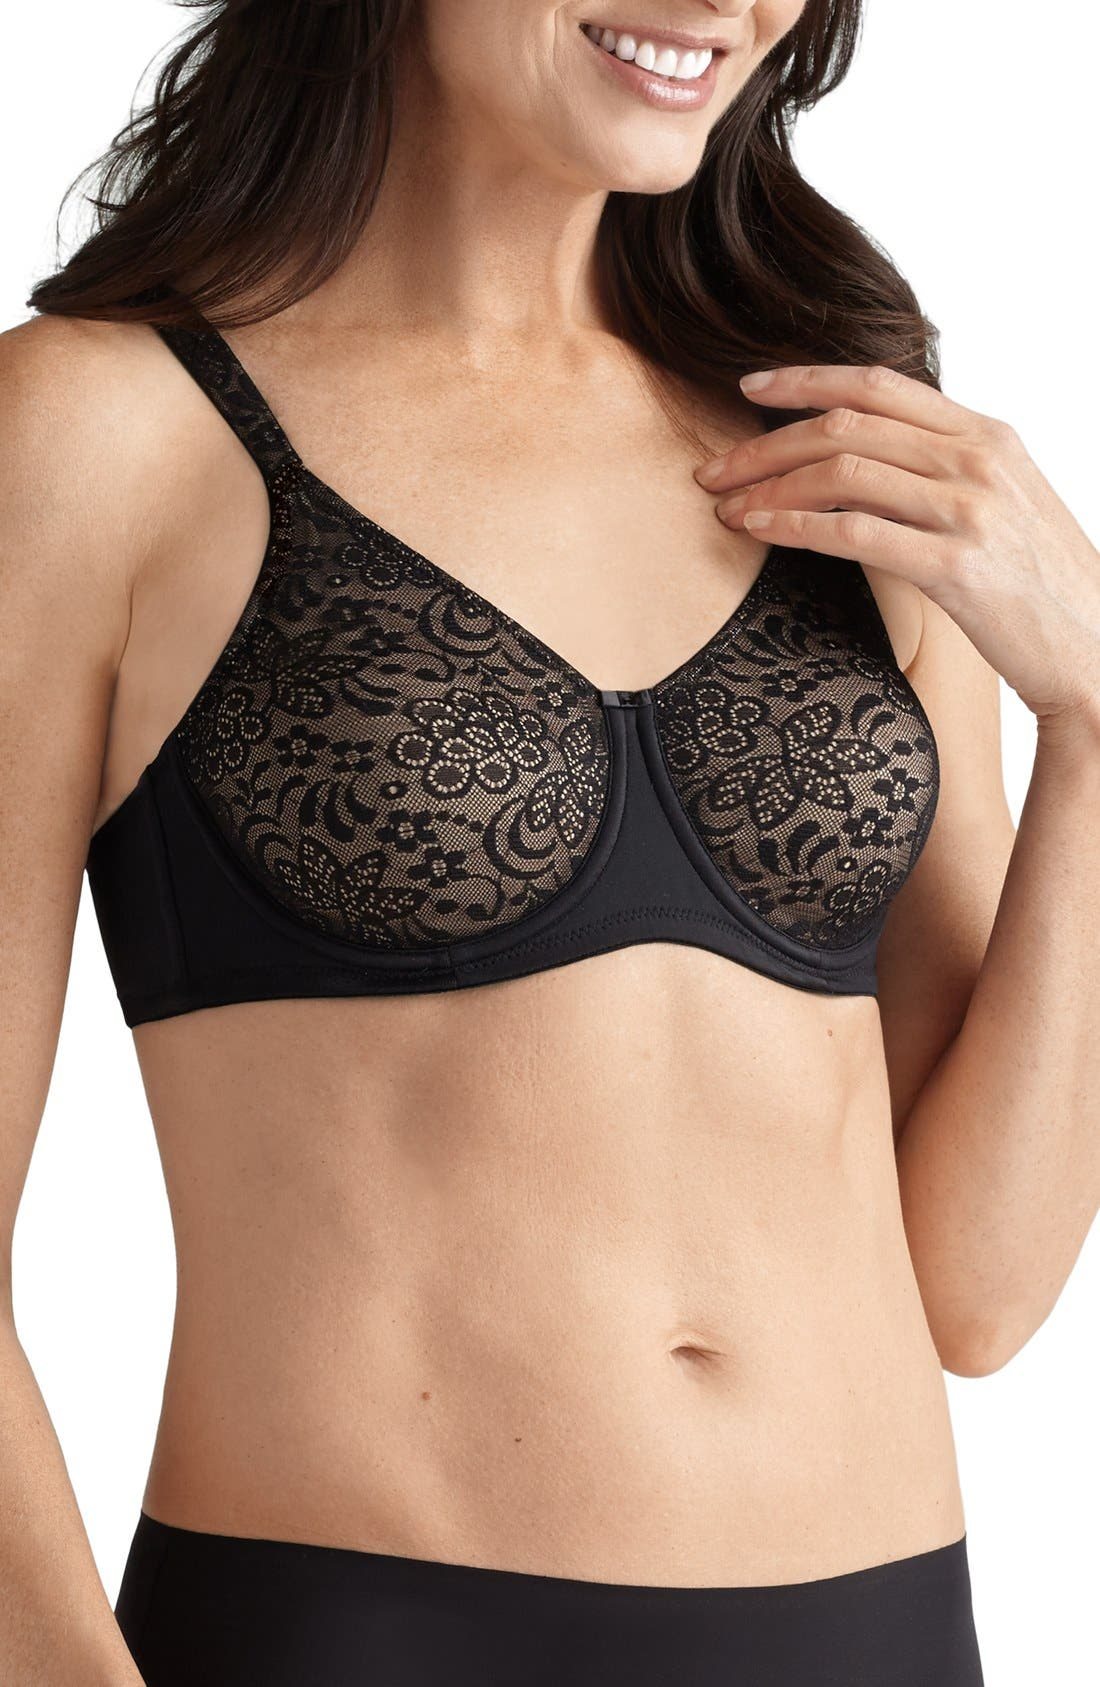 'Annette' Lace Underwire Bra,                             Main thumbnail 1, color,                             Black